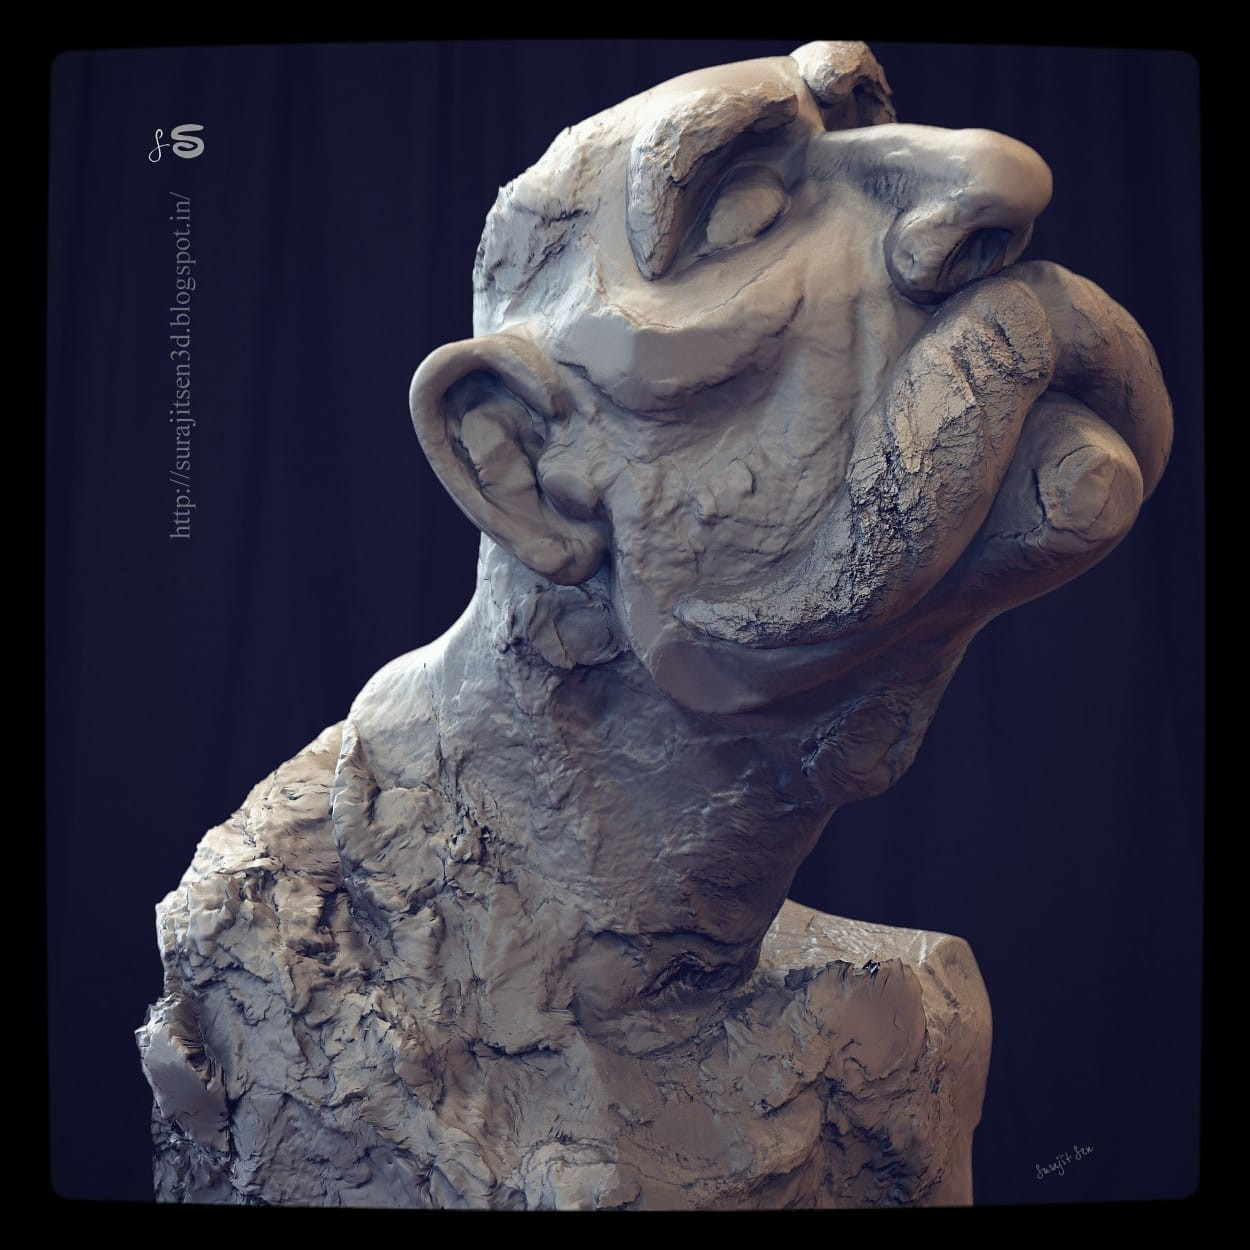 My weekend sculpt.